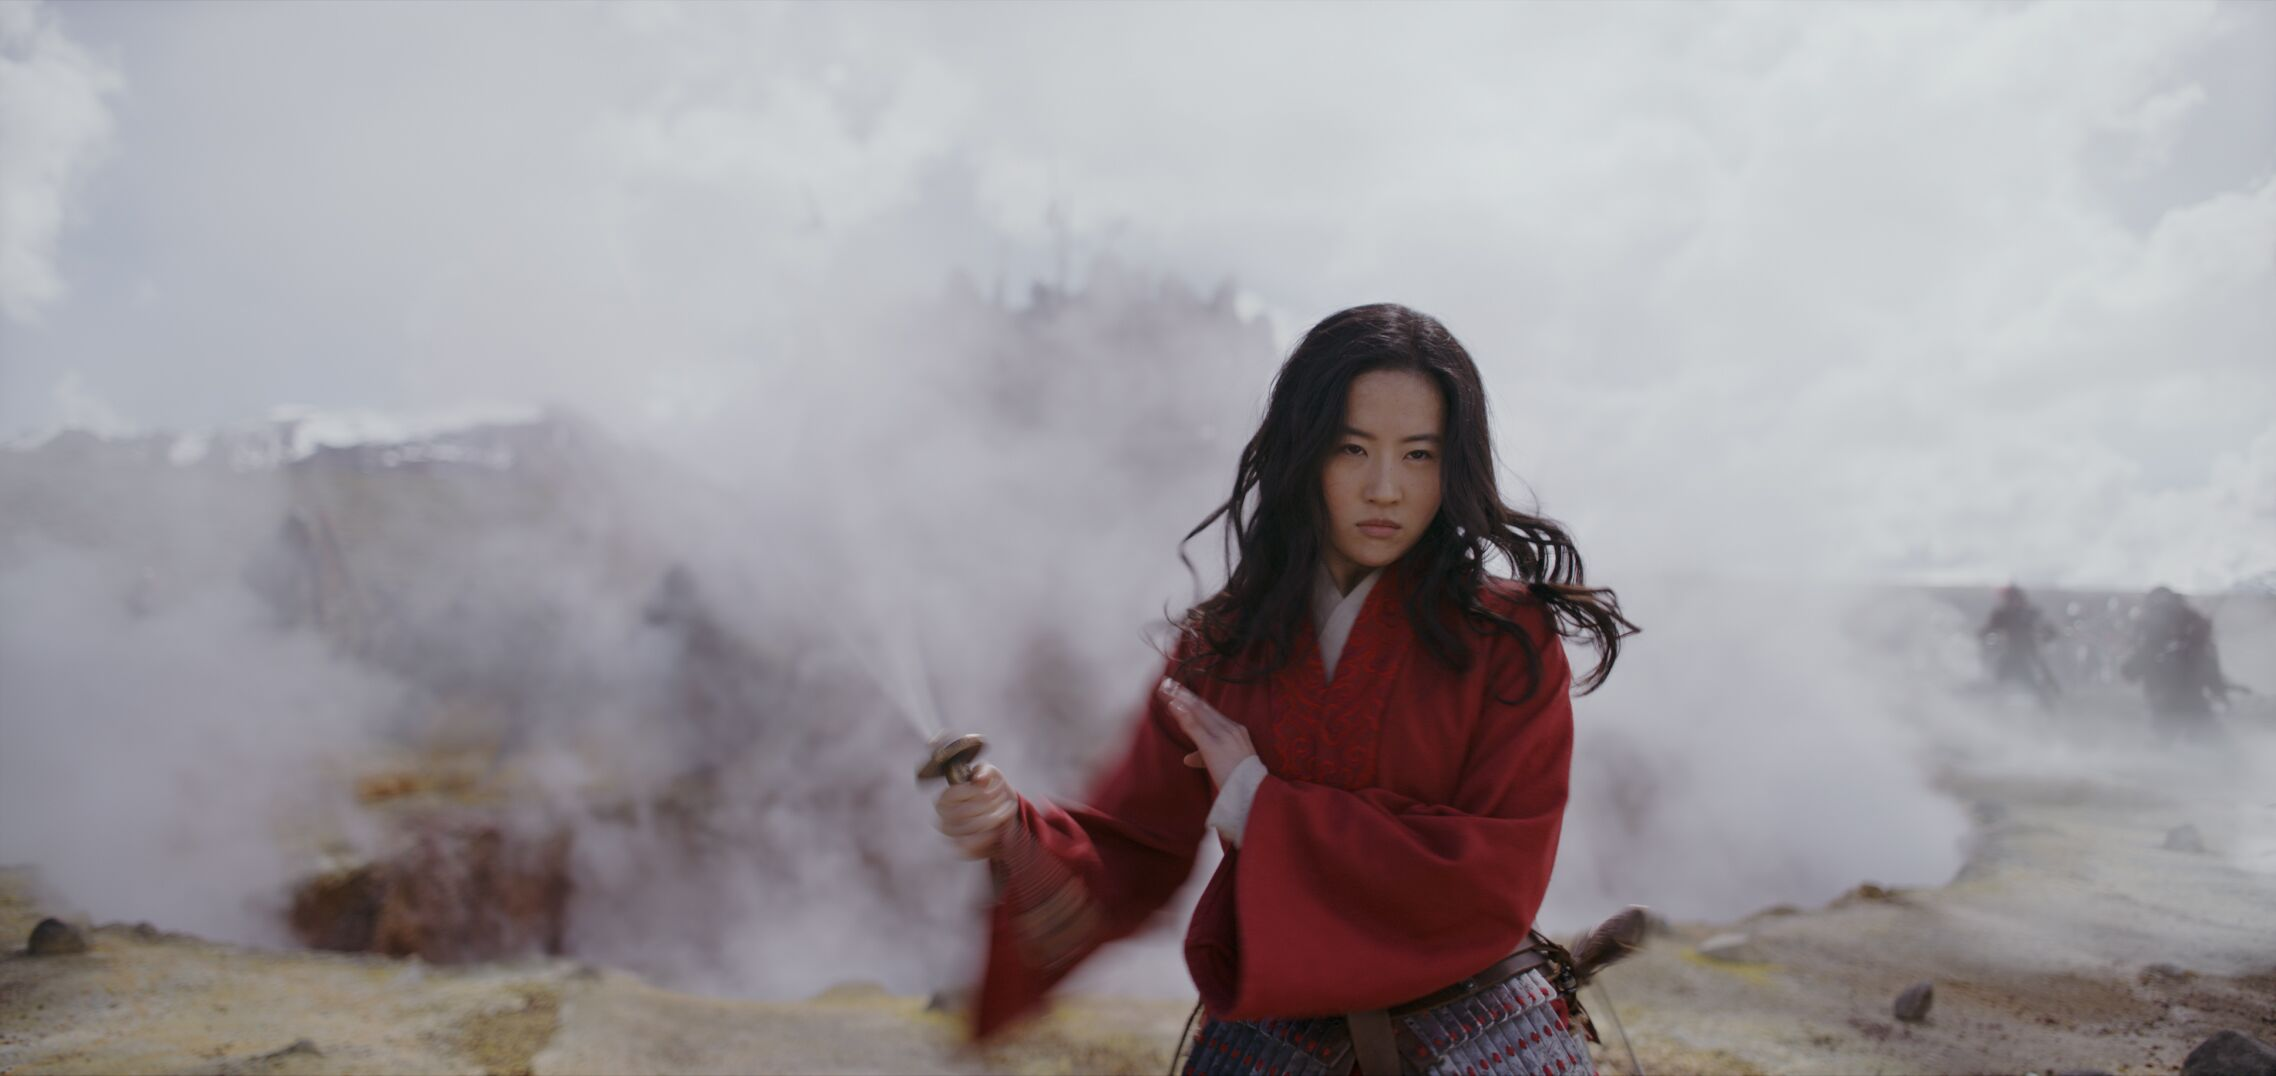 3 things we learned from the new full trailer for the live action Mulan